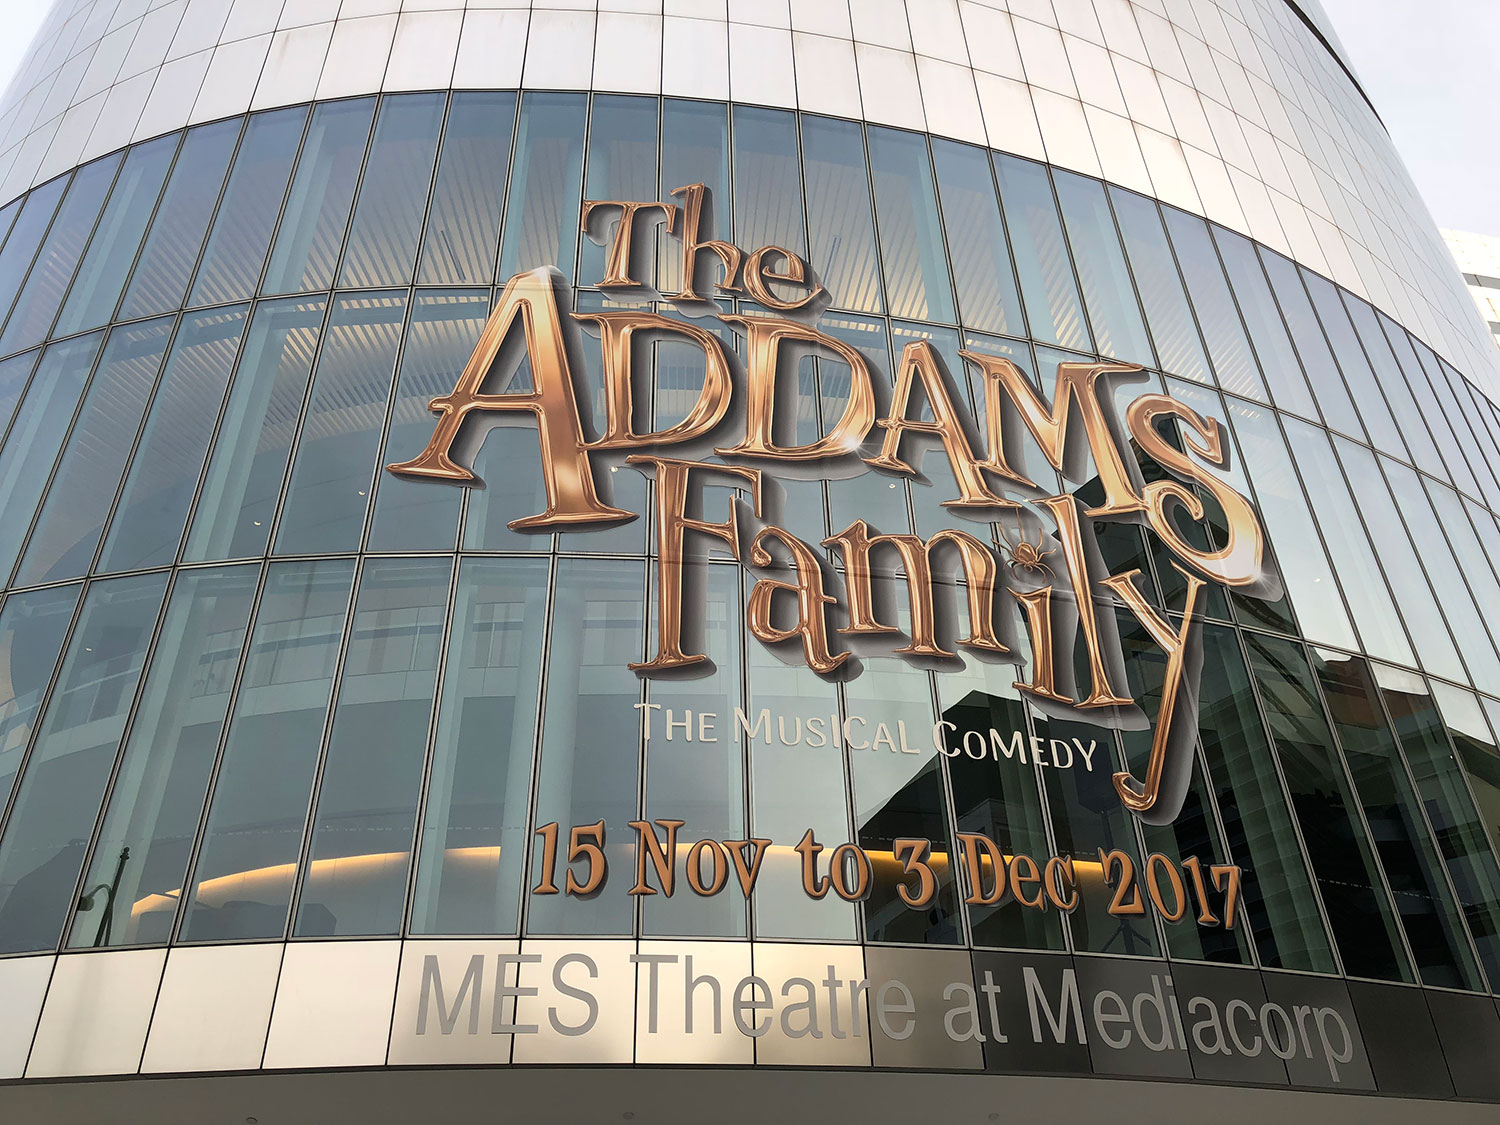 The Addams Family Singapore